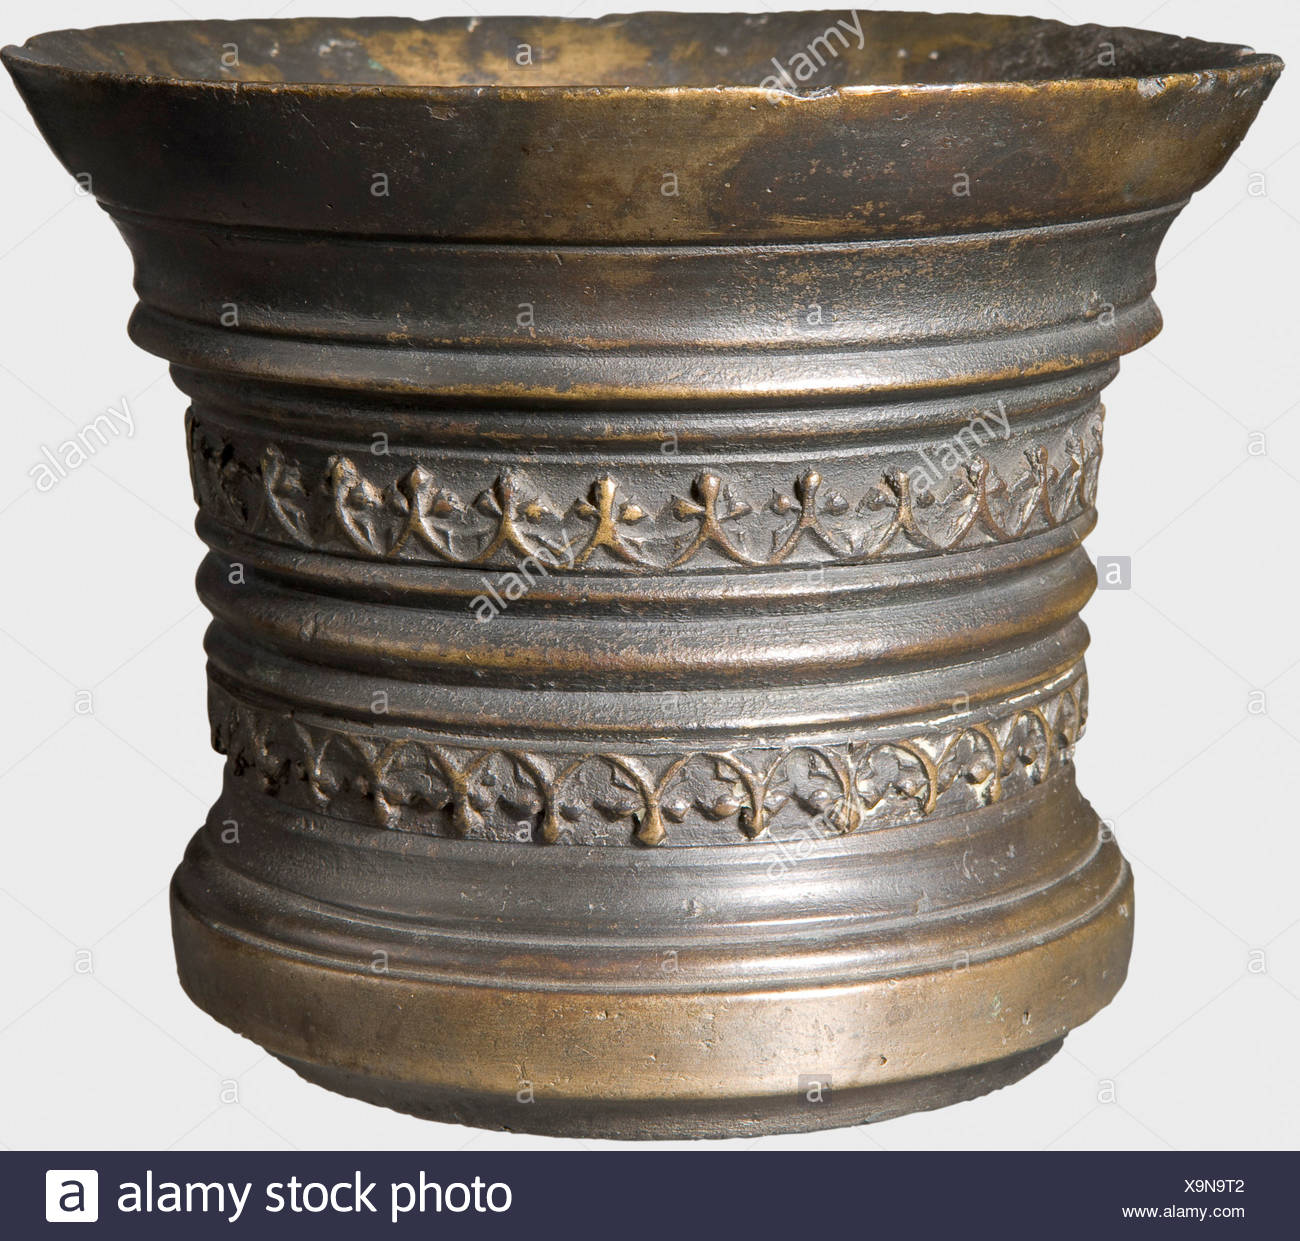 A Dutch bronze mortar, 16th century Bronze with darkened age patina. Cylindrical body with widely flared lip and stepped pedestal. Continuous banded sections with two Gothic tracery friezes. The lip with small nicks. Height 11.2 cm, diameter 14 cm. historic, historical, 16th century, handicrafts, handcraft, craft, object, objects, stills, clipping, clippings, cut out, cut-out, cut-outs, vessel, vessels, Additional-Rights-Clearances-NA - Stock Image